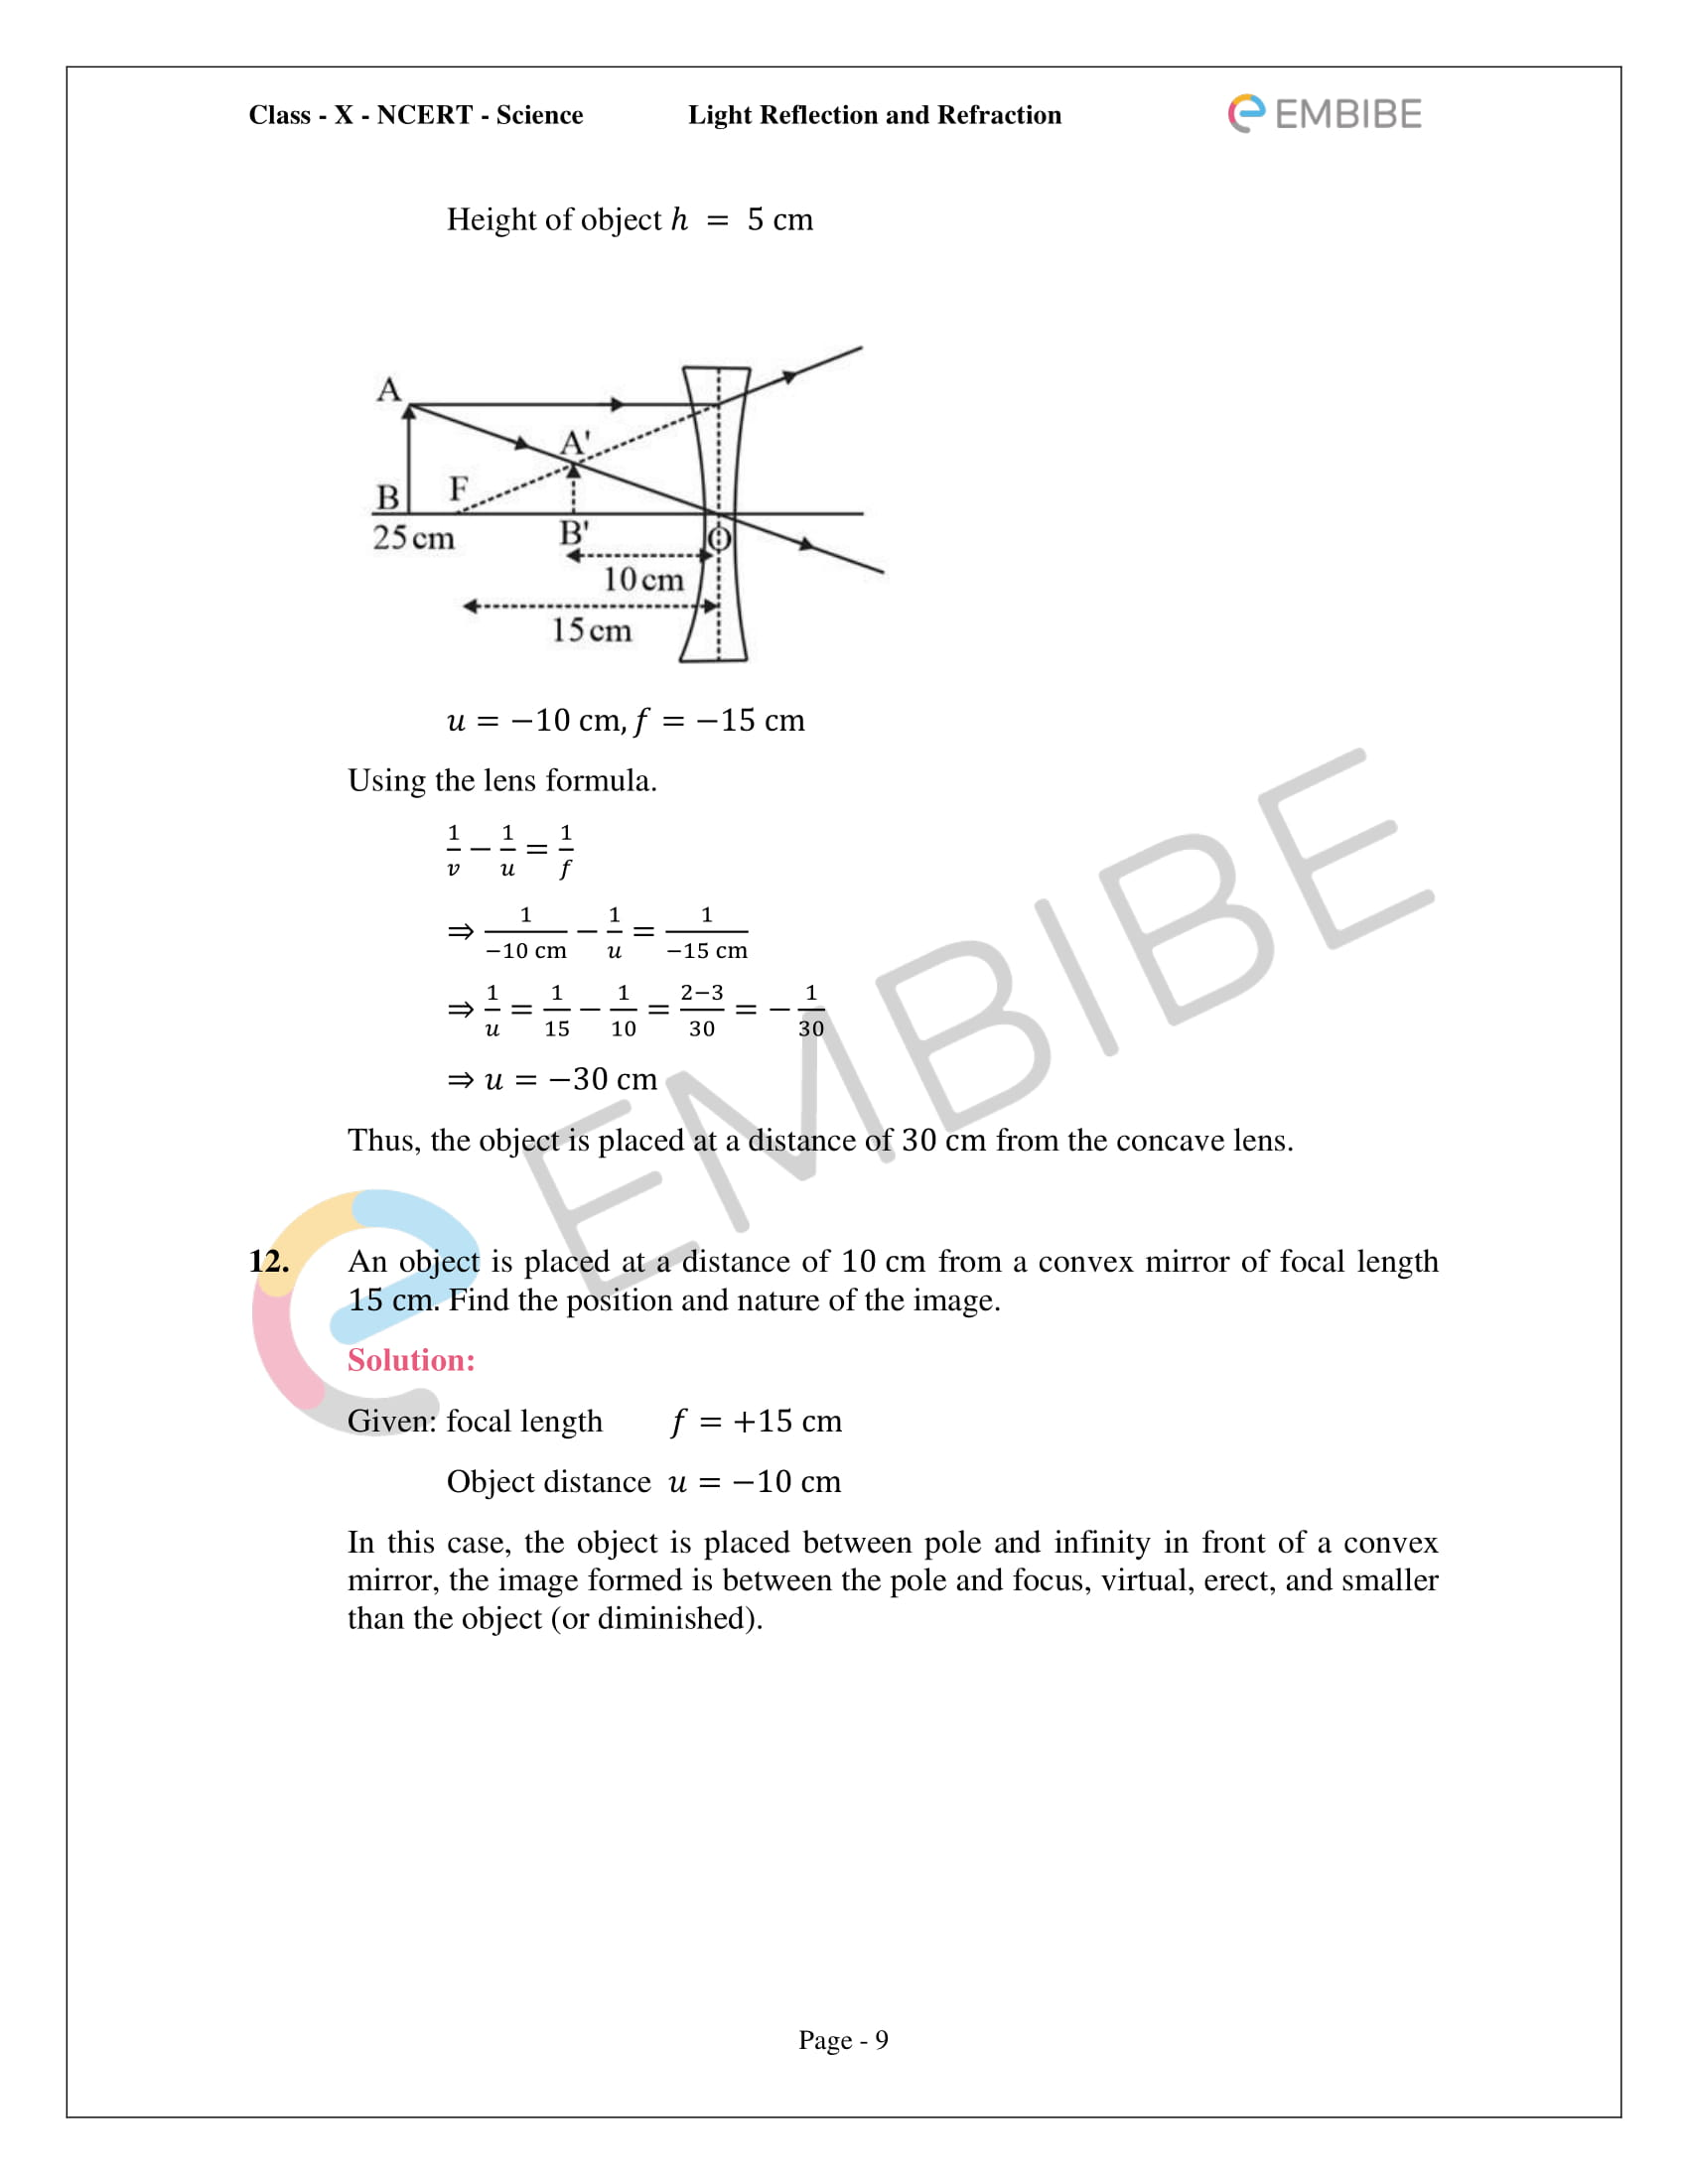 CBSE NCERT Solutions For Class 10 Science Chapter 10 - Light Reflection and Refraction - 9